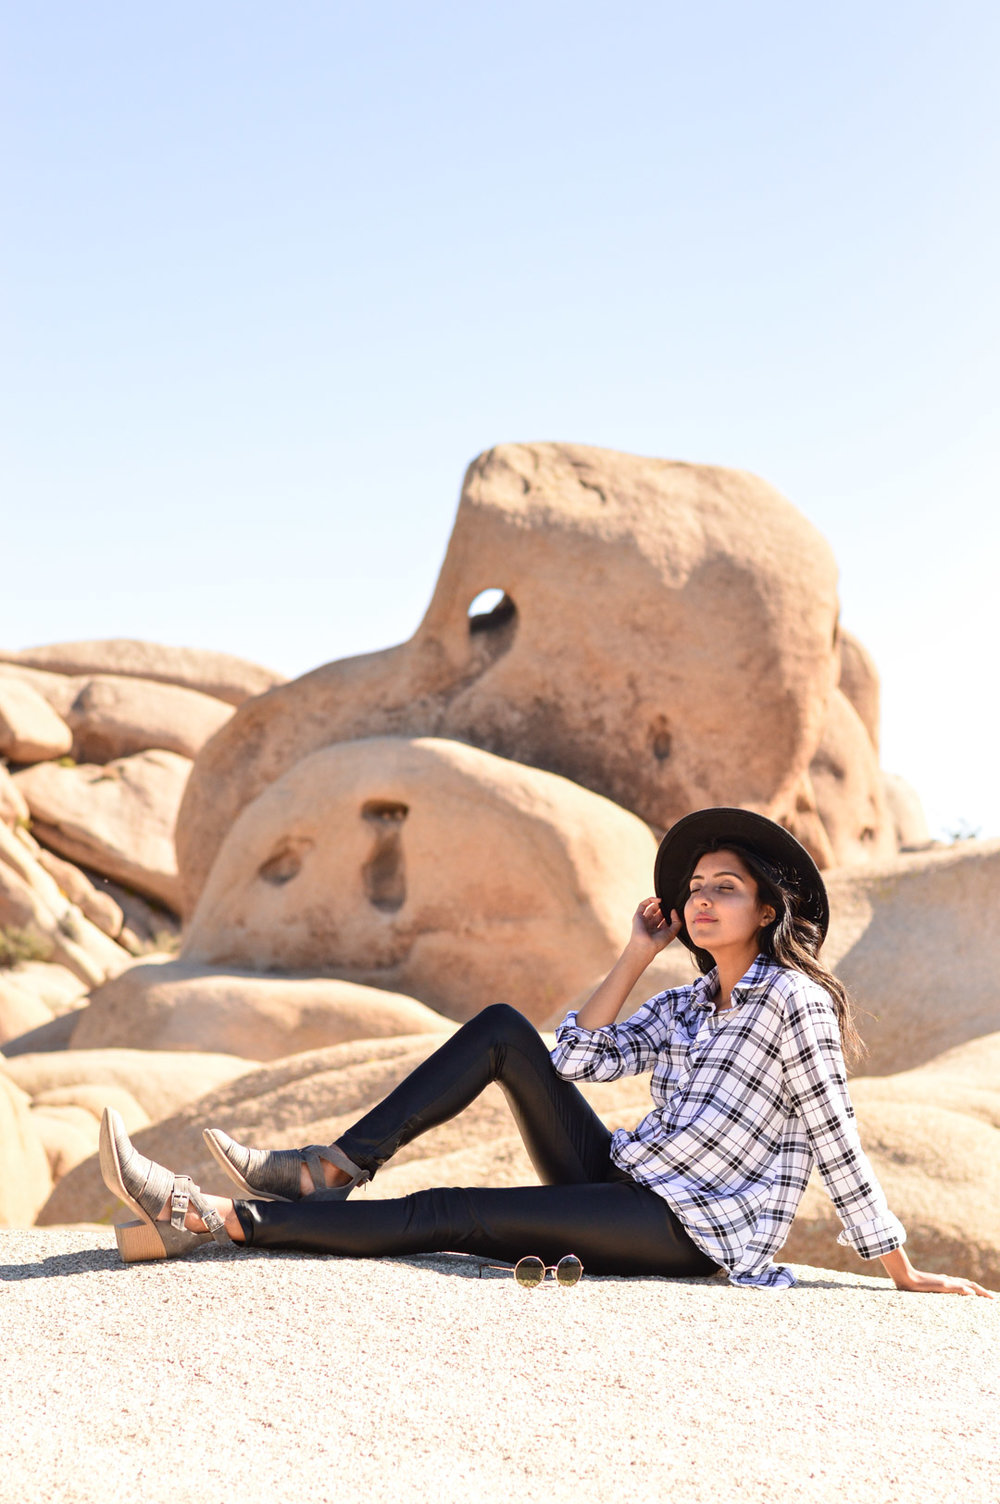 joshua-tree-national-park-california-travel-plaid-blogger-outfit 23